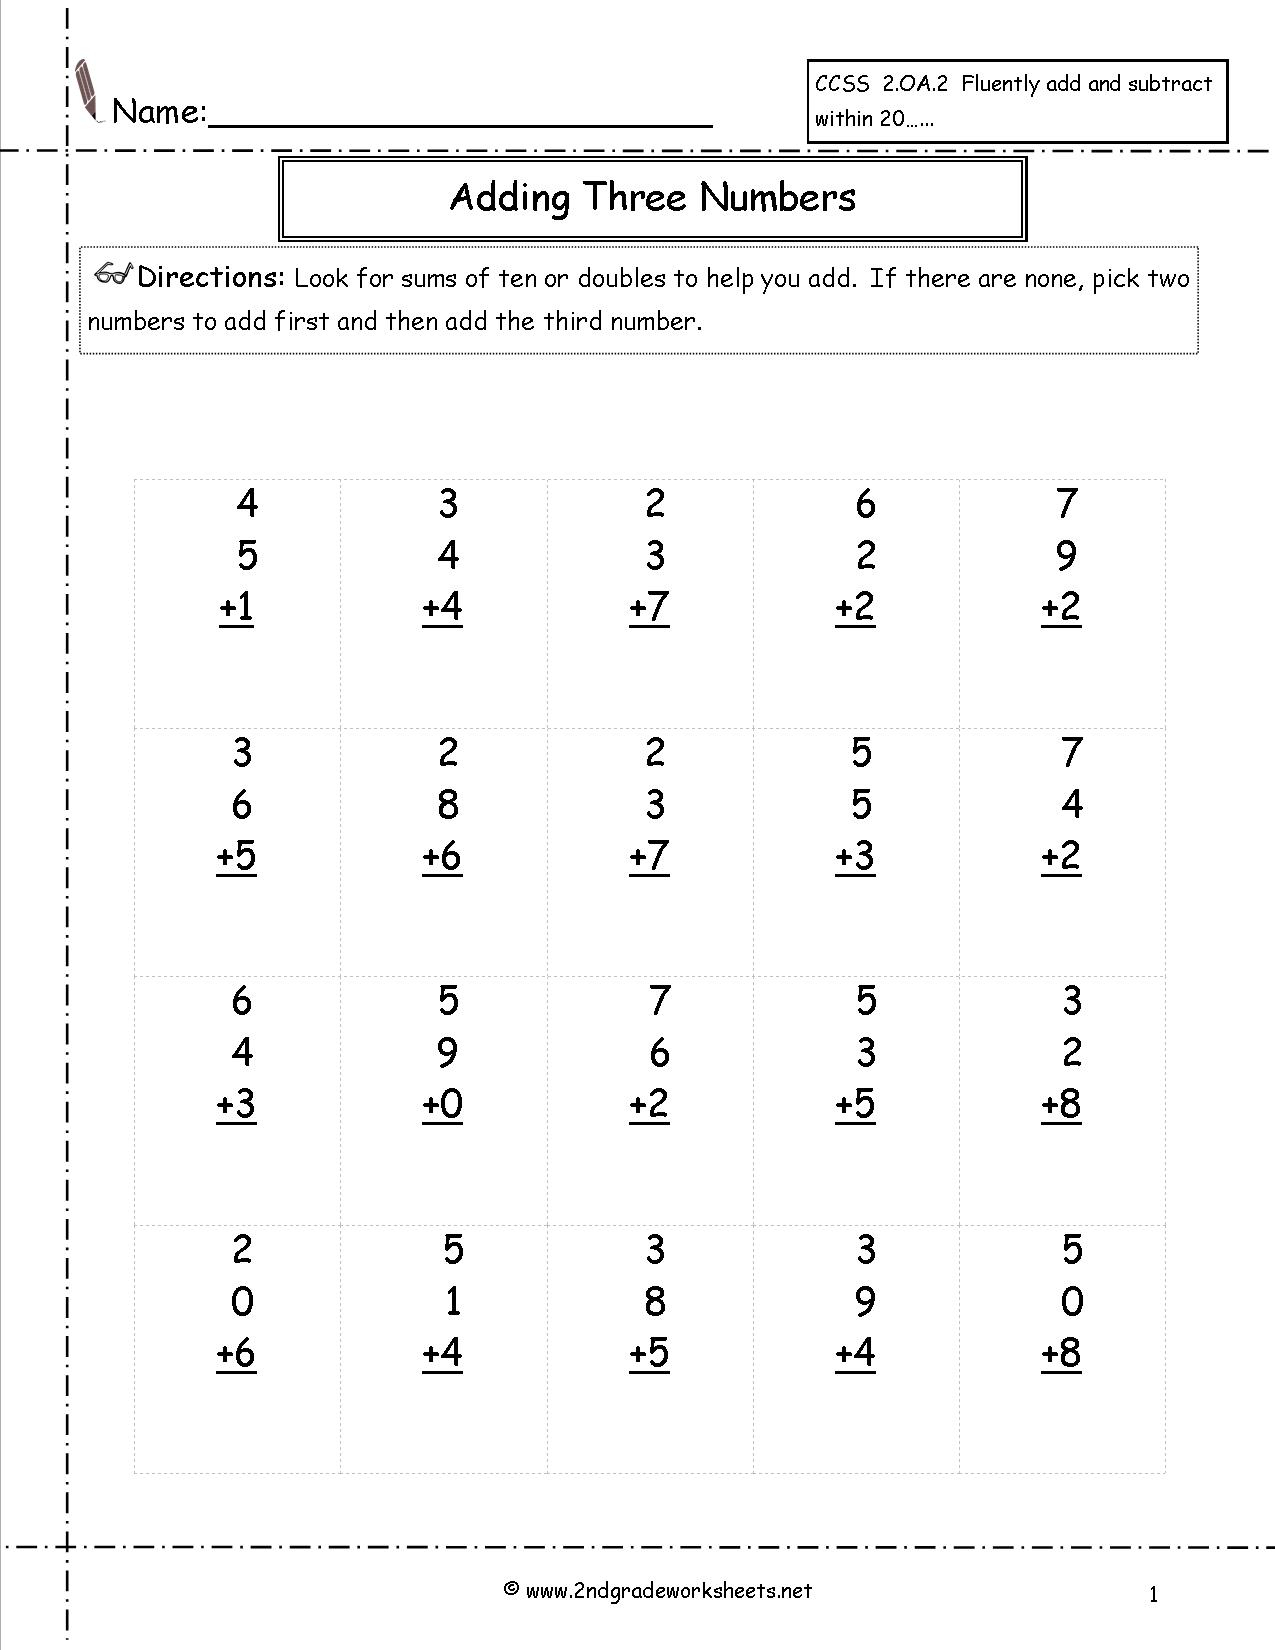 Free Math Worksheets And Printouts   Math Worksheets For Teachers Printable